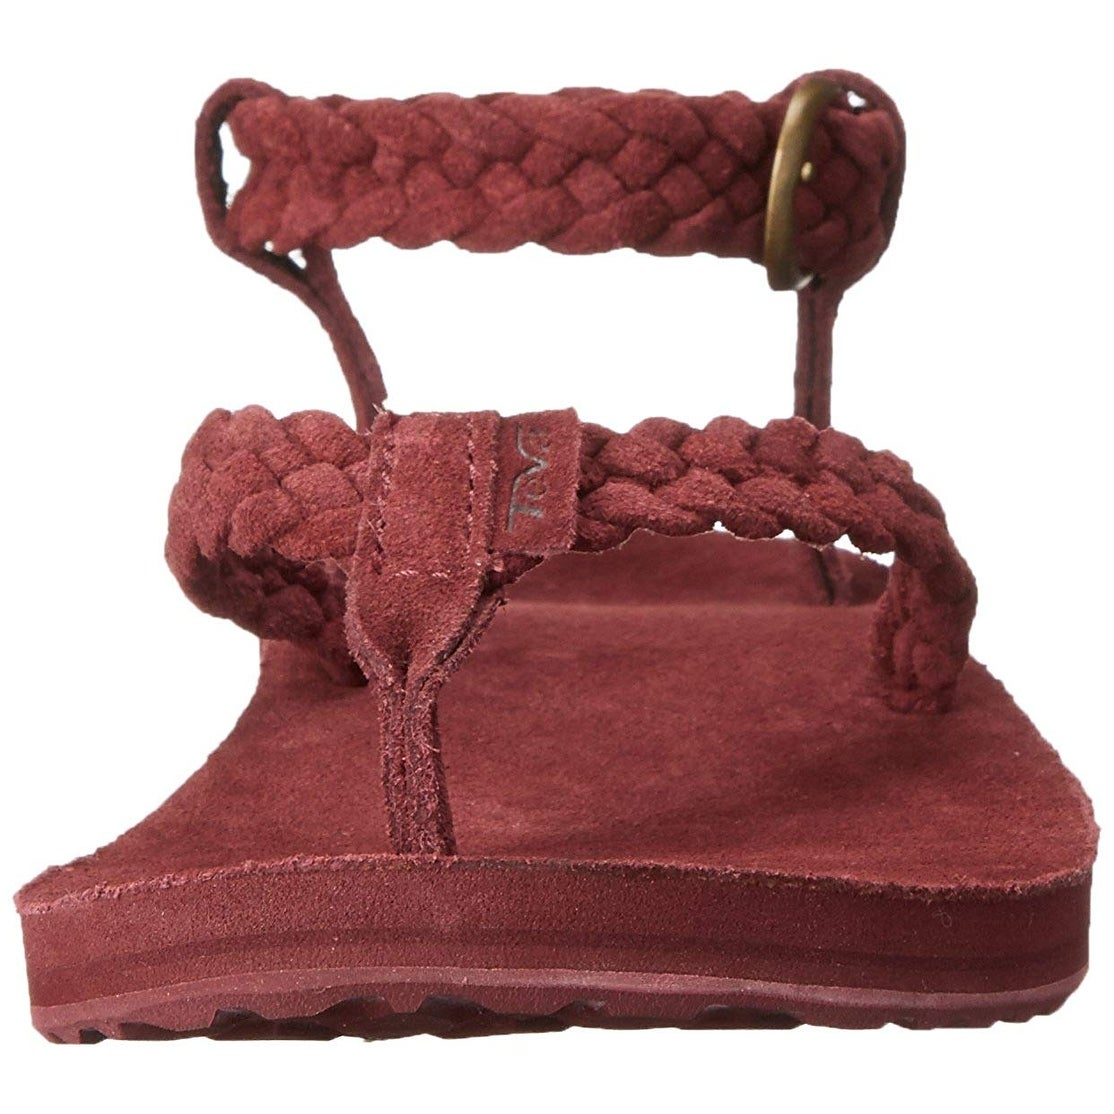 9bc5484d5da9 Shop Teva Women s Original Suede Braided Ankle-Strap Sandal - 10 - Free  Shipping On Orders Over  45 - Overstock - 25893371